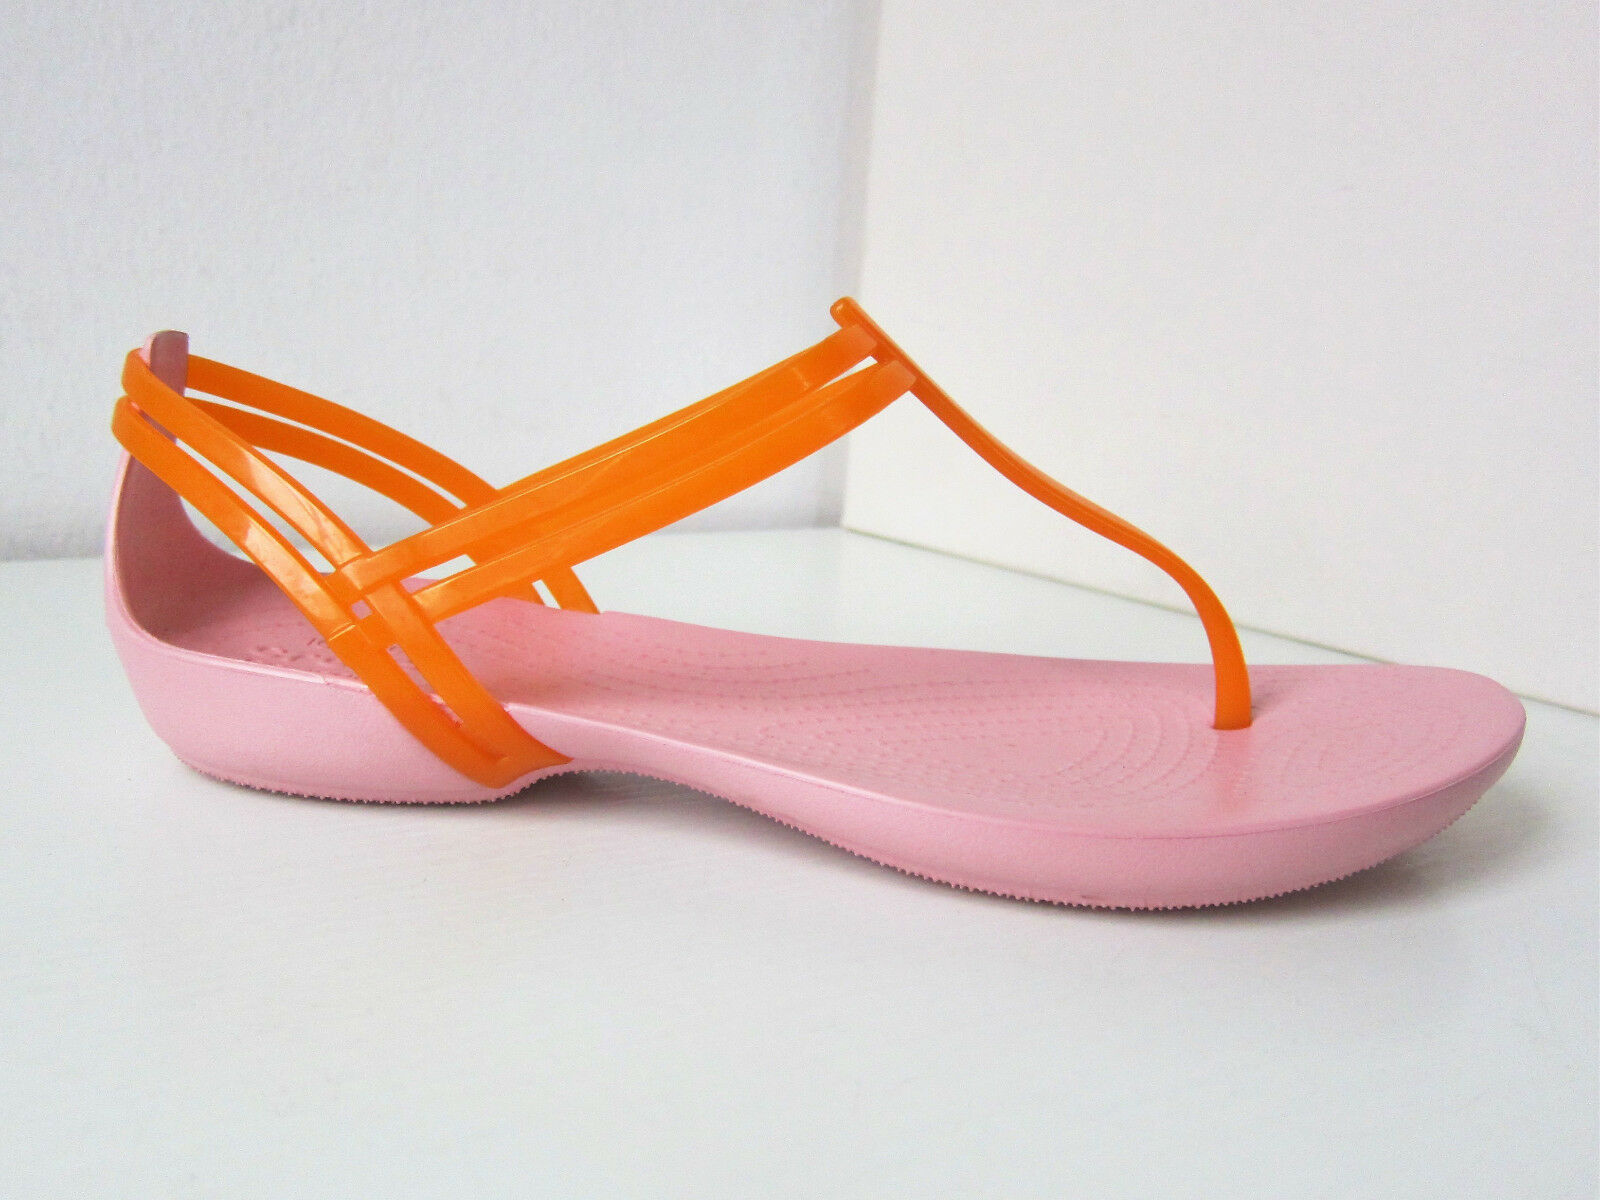 Crocs isabella t-strap Sandale orange W 9  39 40 sandals shoes thongs petal pink